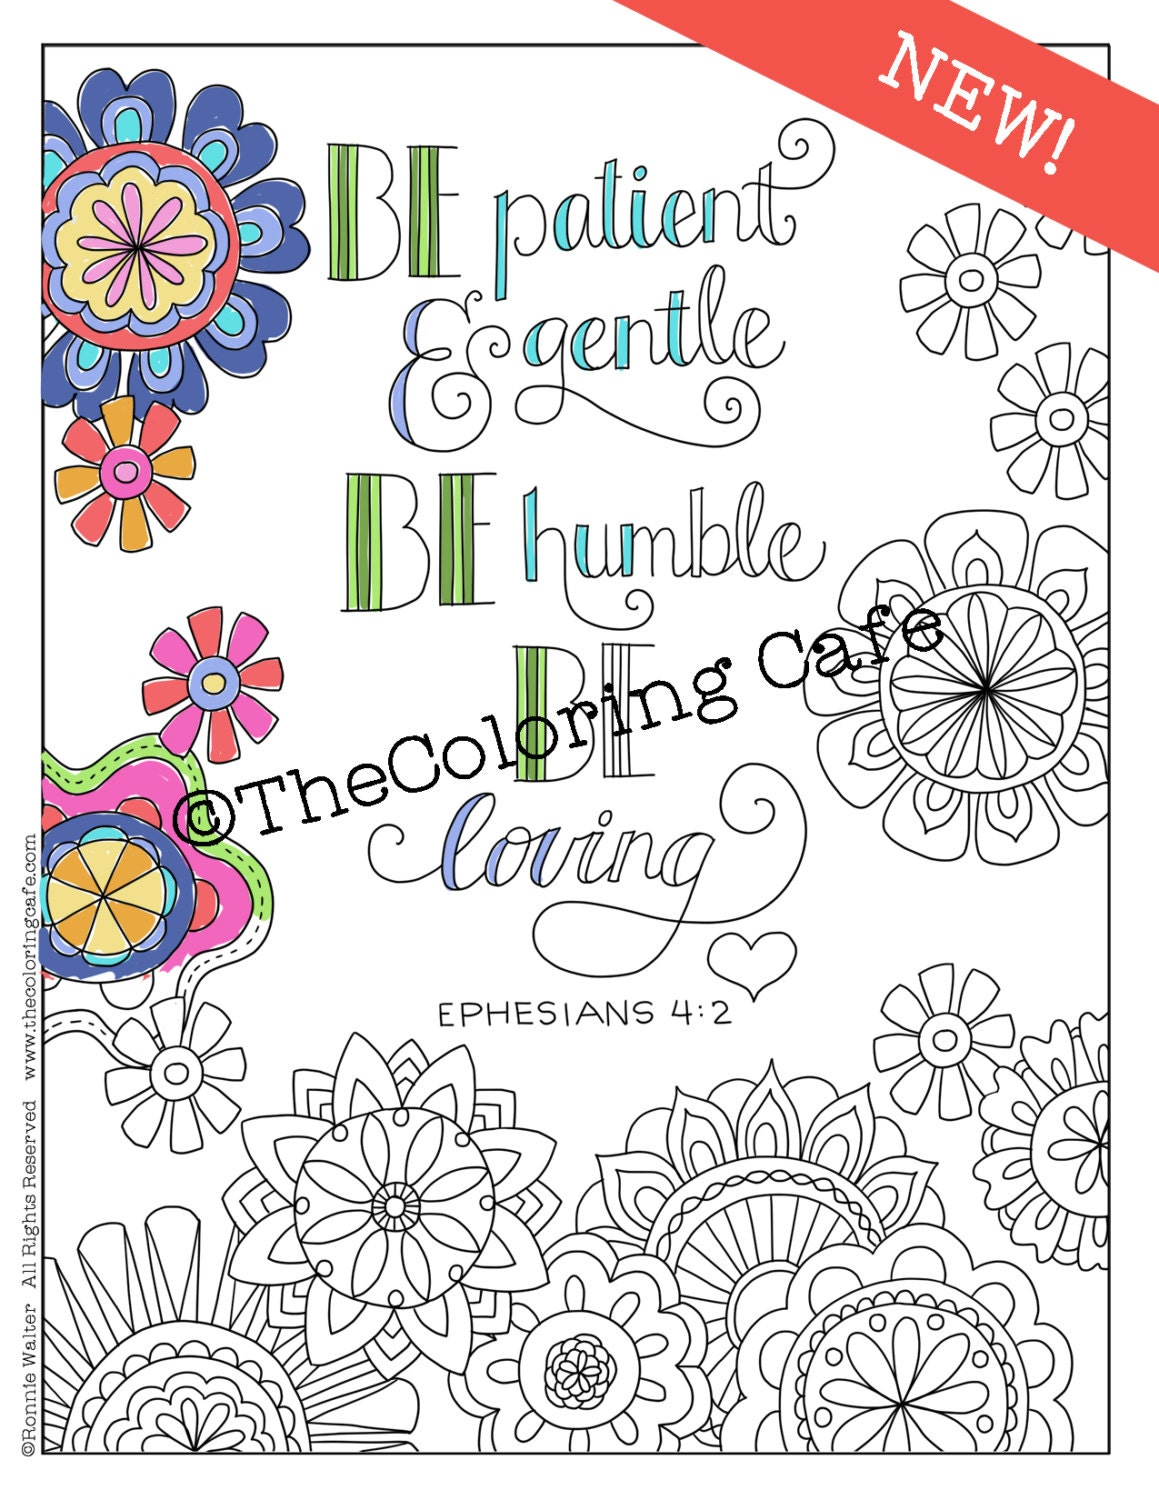 The coloring book project 2 download - This Is A Digital File